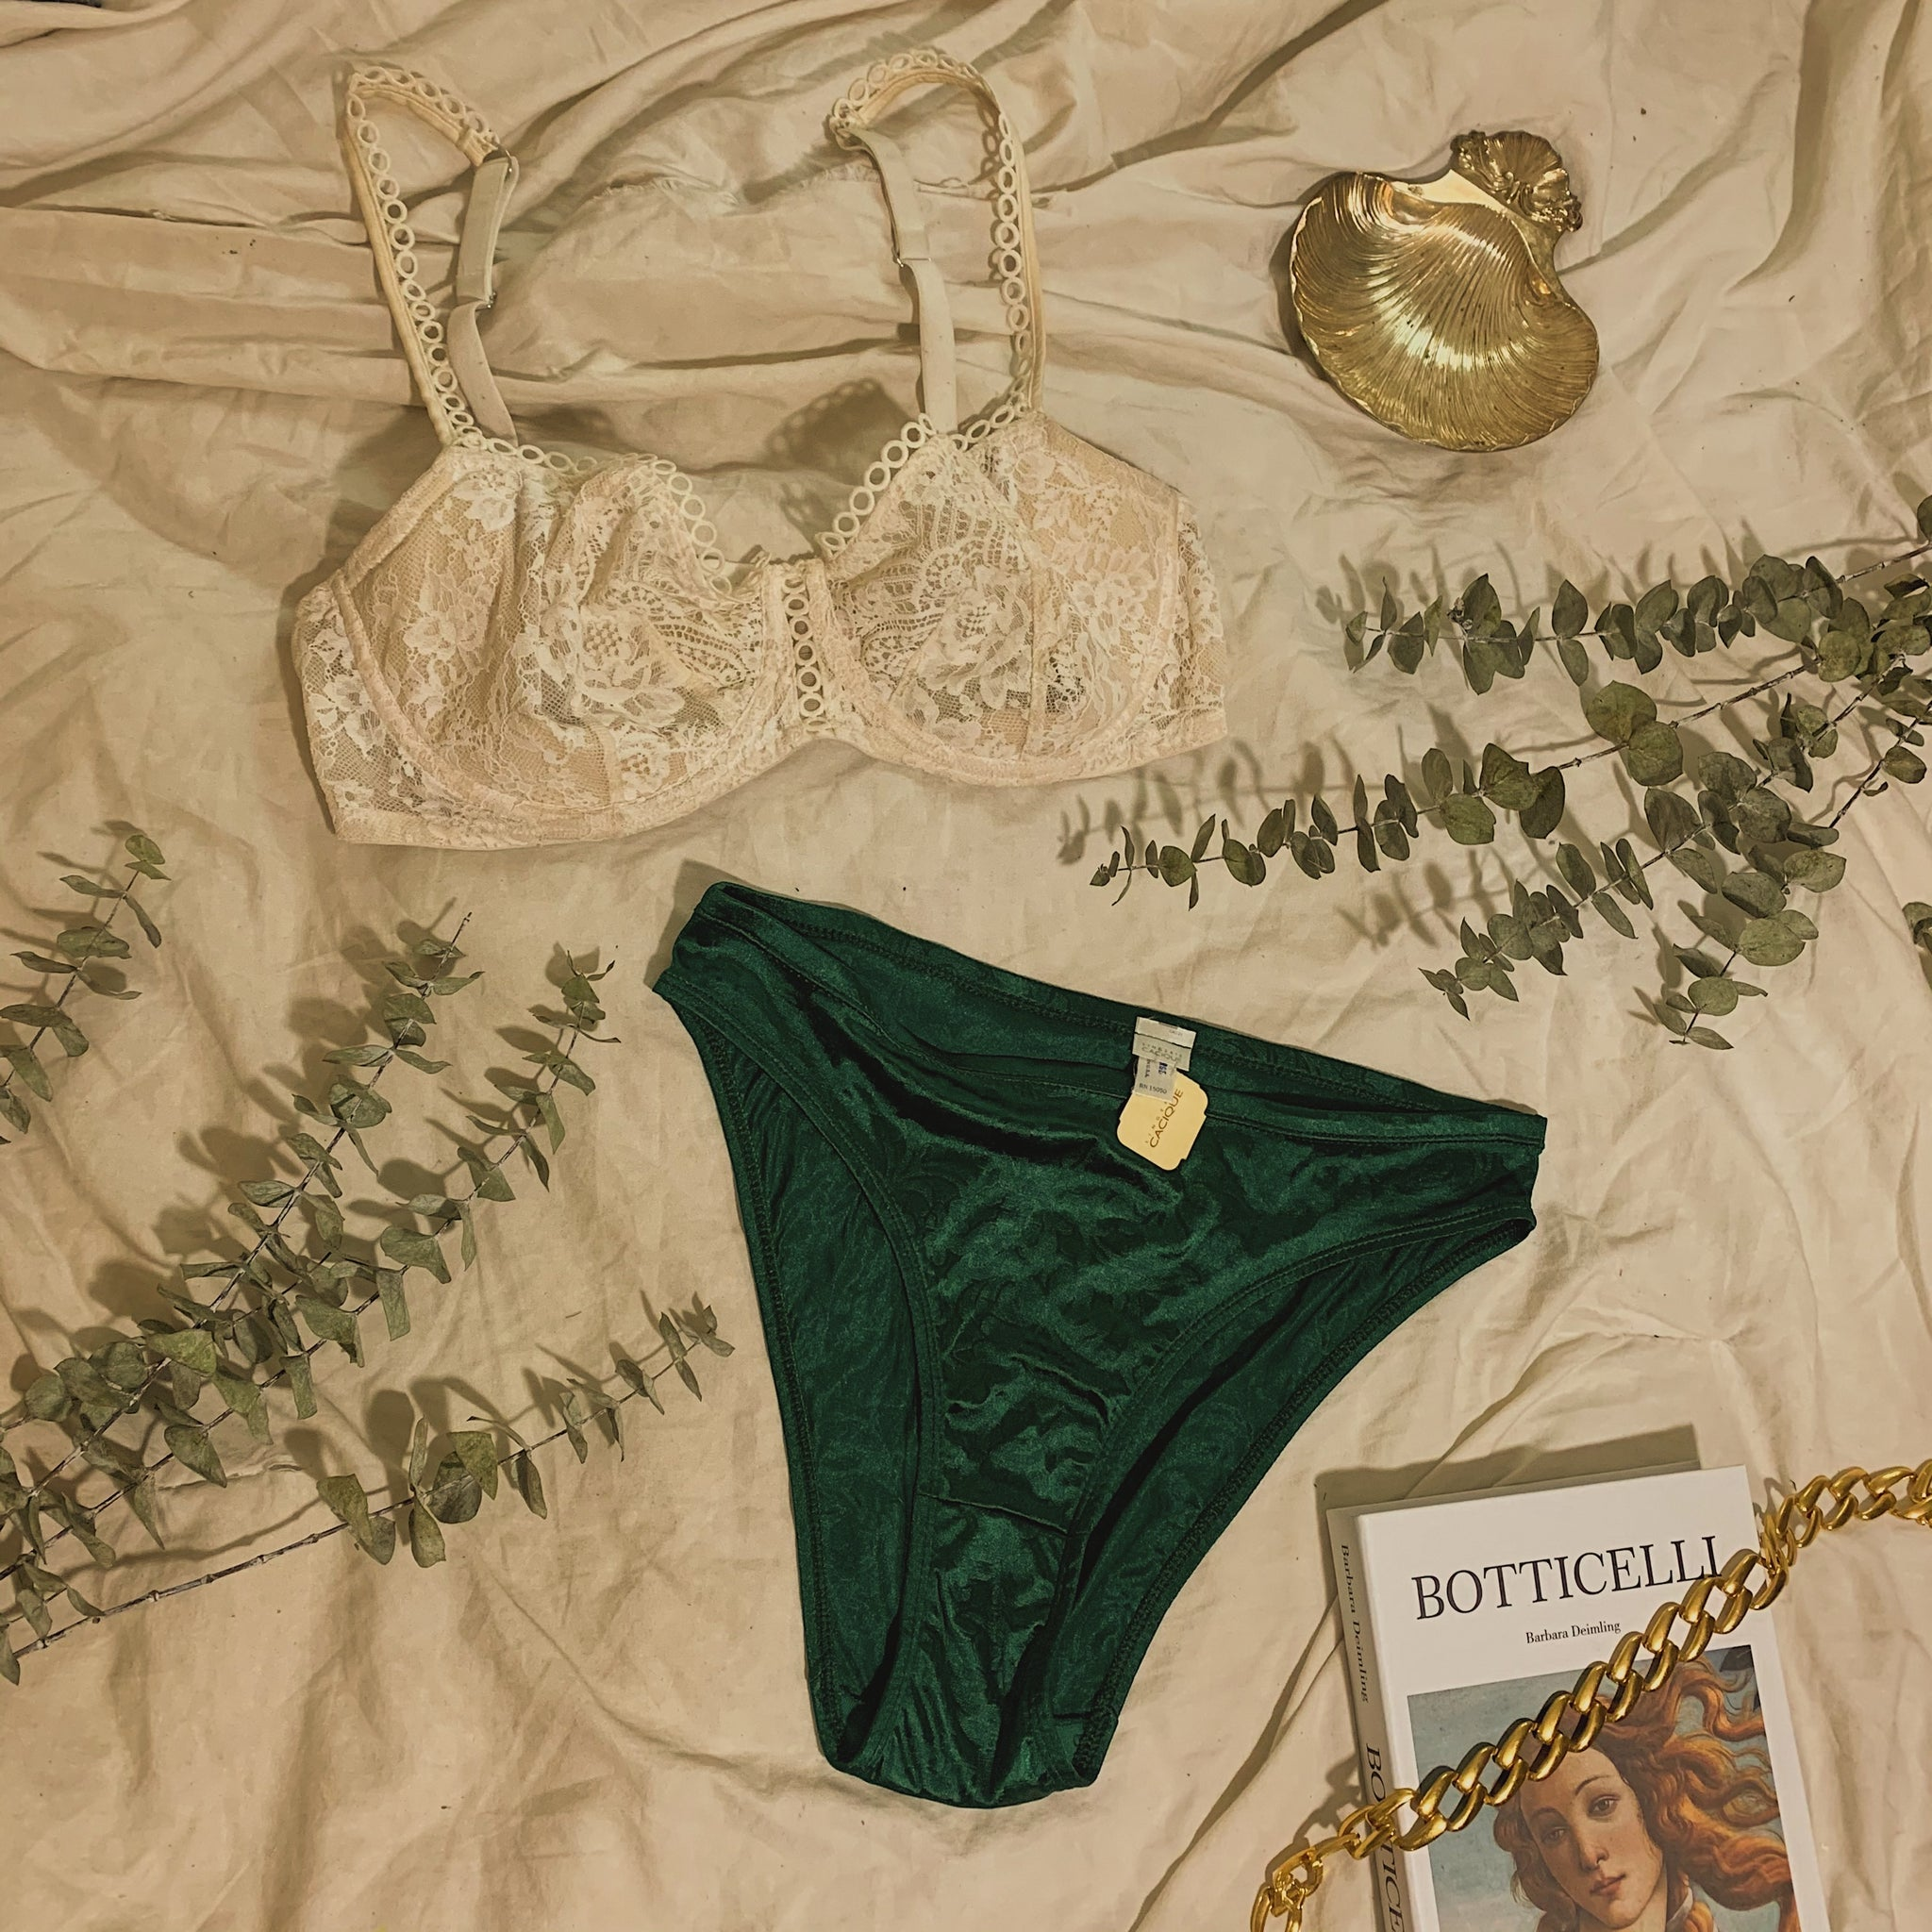 'Arian' Floral Satin Emerald Green Panties (M/L) (New W/ Tags)